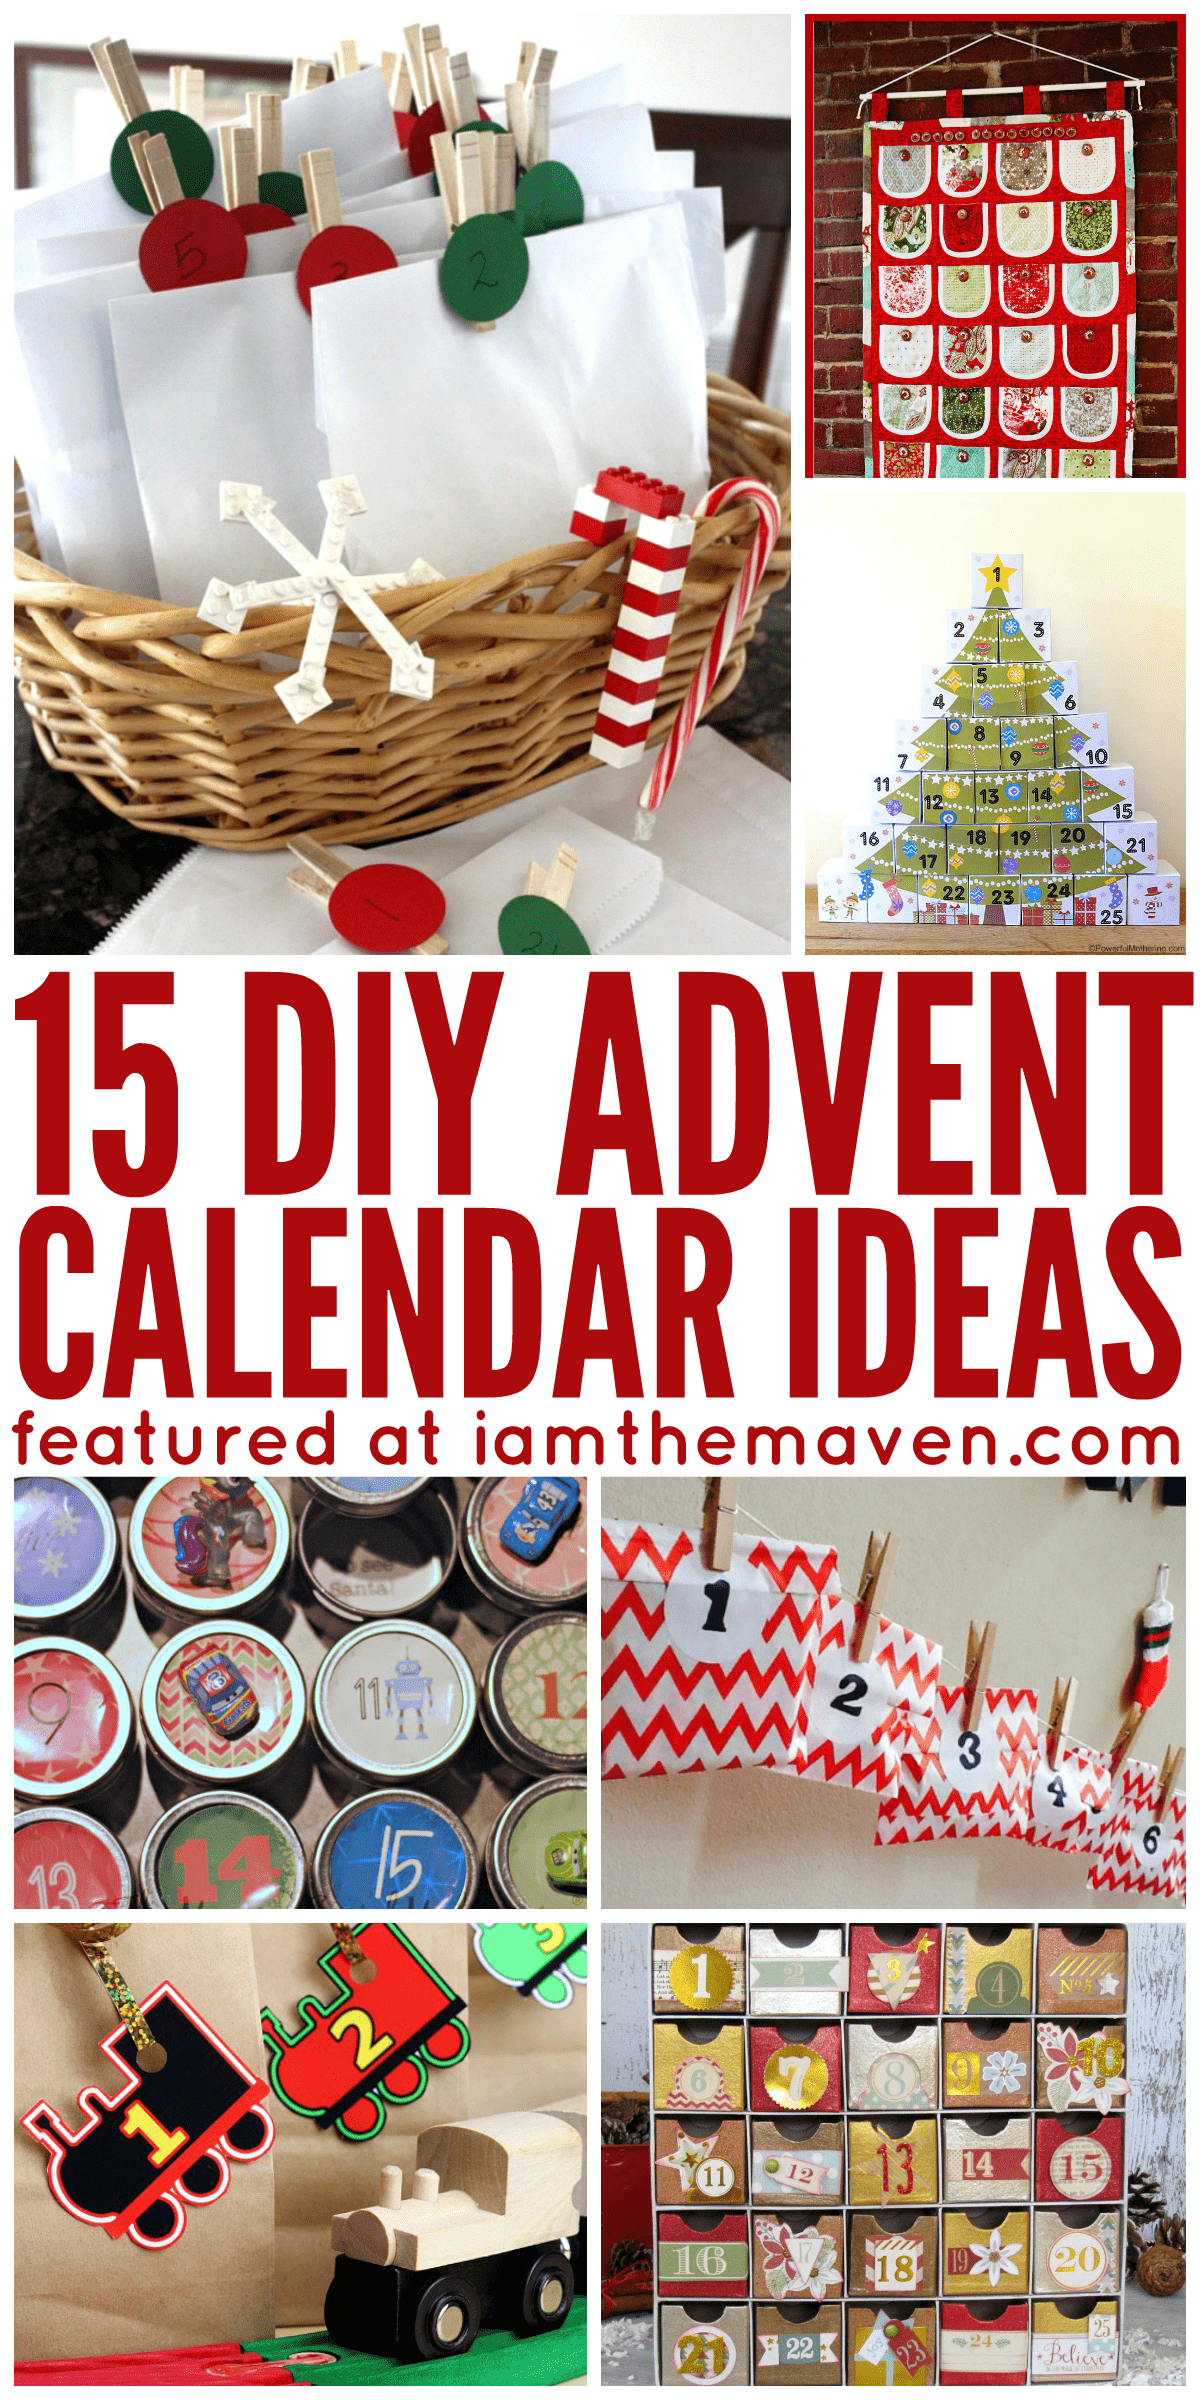 Advent Calendar Ideas For Girls : Advent calendar ideas related keywords